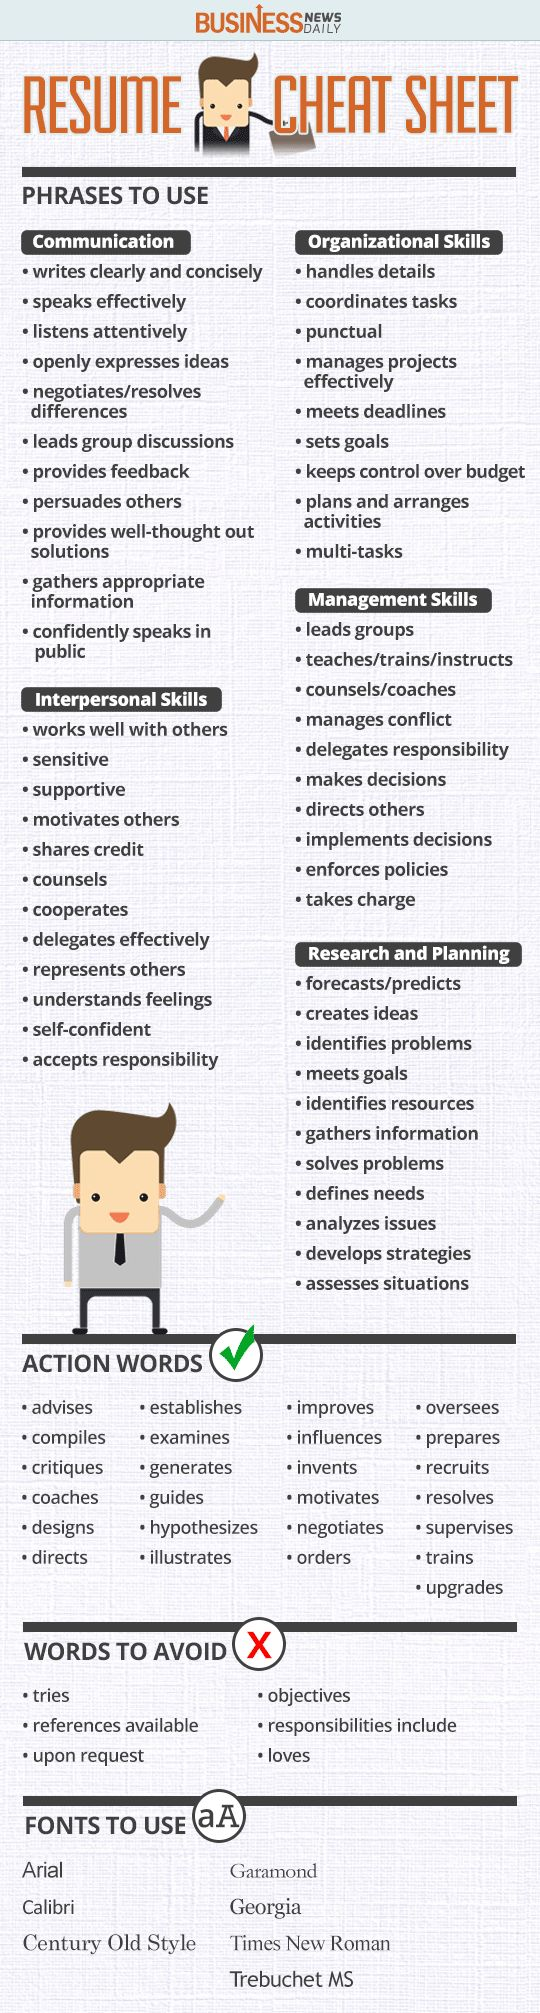 Opposenewapstandardsus  Ravishing  Ideas About Resume On Pinterest  Cv Format Resume Cv And  With Foxy Resume Cheat Sheet Infographic Andrews Almost Done With A Complete Unit On Employment Which With Astounding Data Entry Sample Resume Also Resume Examples For Bank Teller In Addition Examples Of College Student Resumes And Summary Examples For Resumes As Well As Operations Supervisor Resume Additionally Hr Manager Resumes From Pinterestcom With Opposenewapstandardsus  Foxy  Ideas About Resume On Pinterest  Cv Format Resume Cv And  With Astounding Resume Cheat Sheet Infographic Andrews Almost Done With A Complete Unit On Employment Which And Ravishing Data Entry Sample Resume Also Resume Examples For Bank Teller In Addition Examples Of College Student Resumes From Pinterestcom